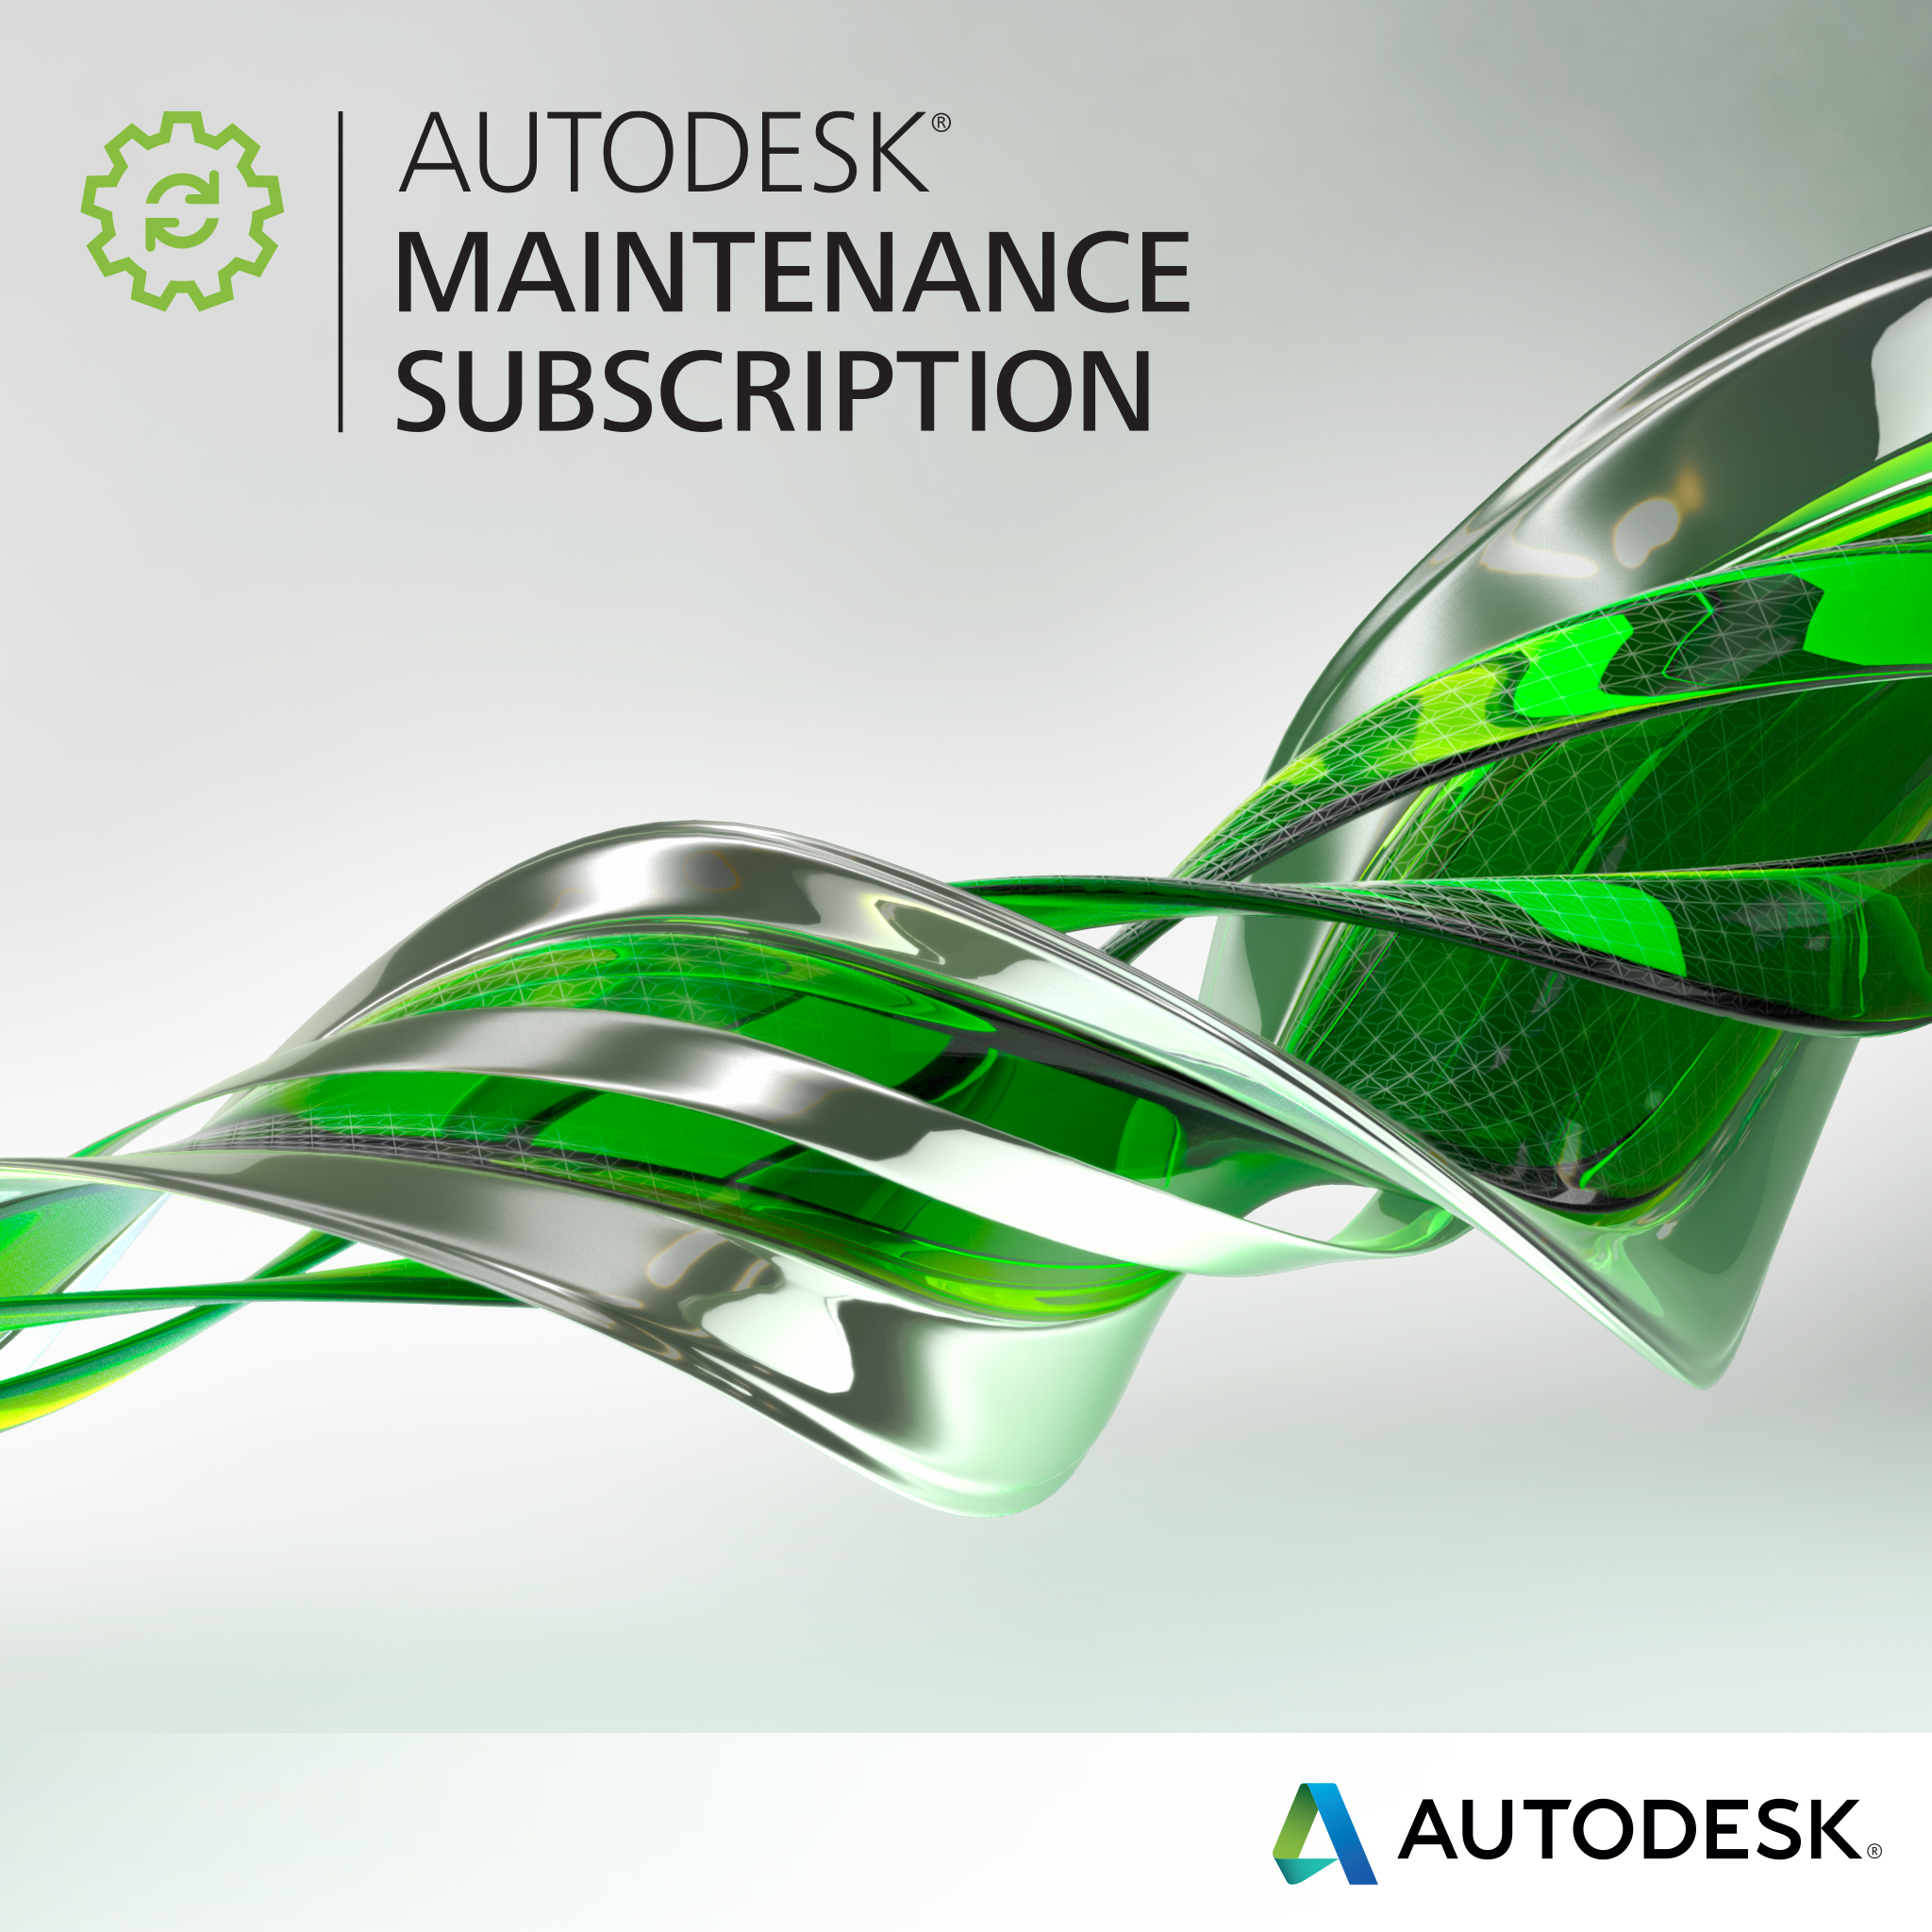 Autodesk Maintenance Plan badge